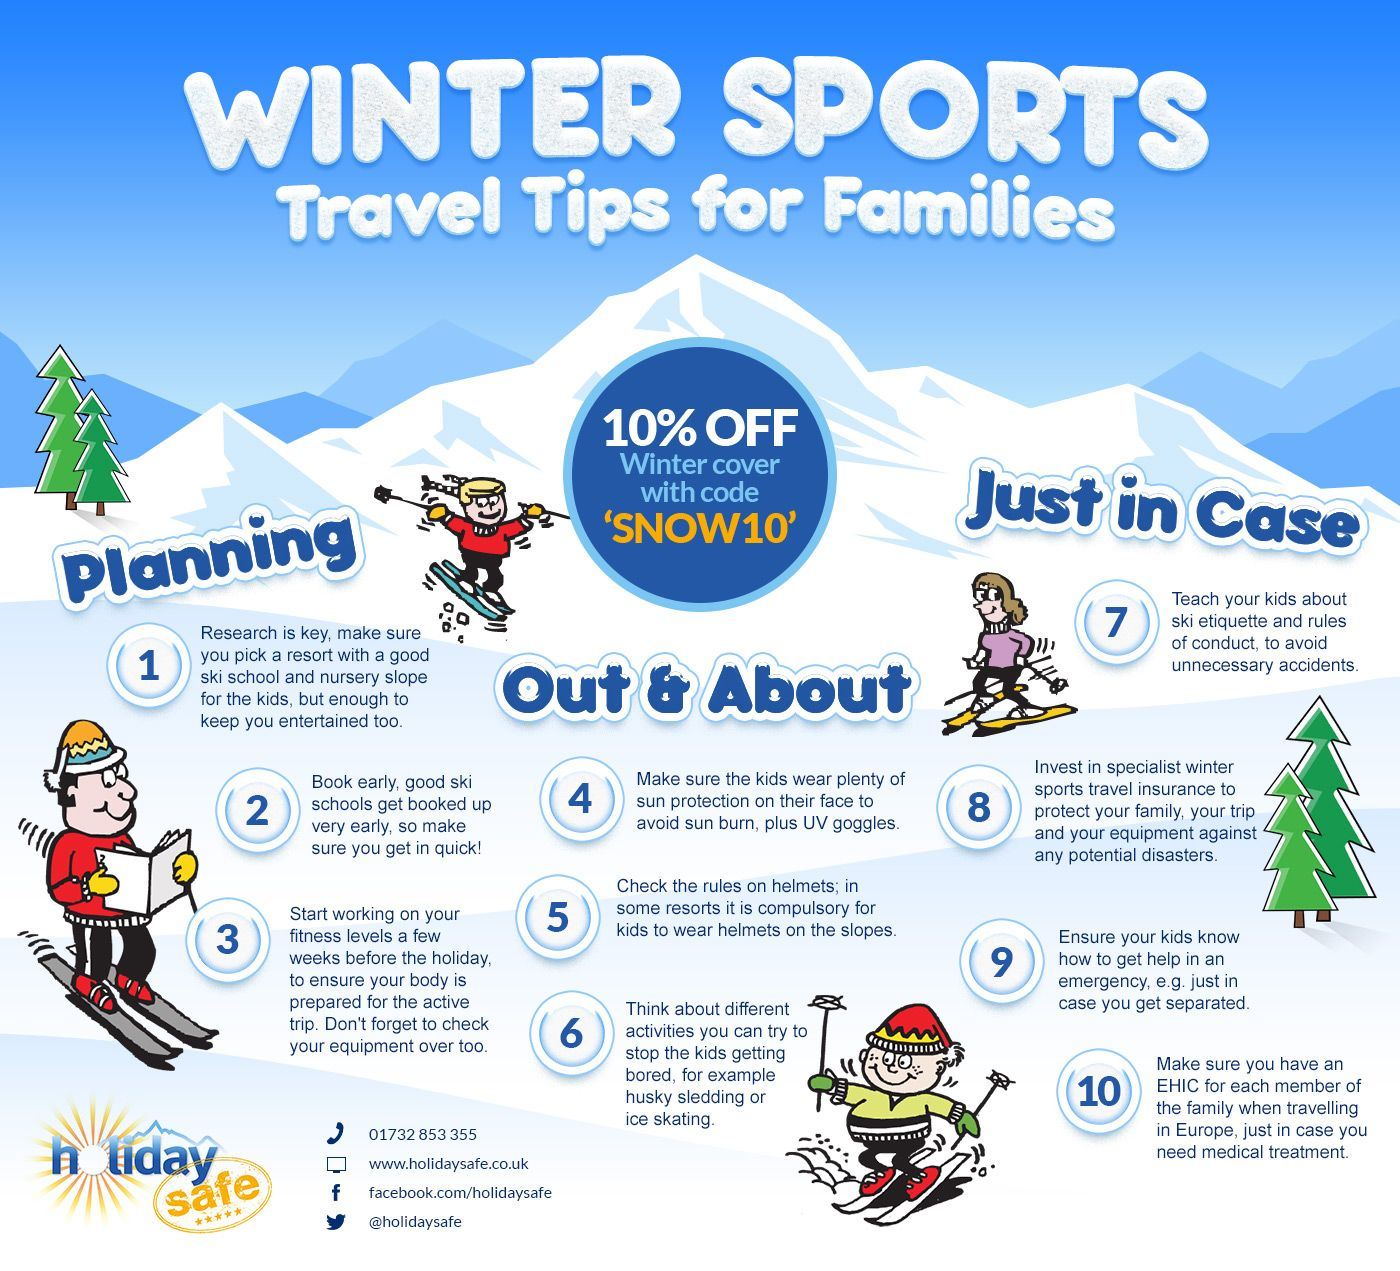 Planning a winter sports holiday with young children can